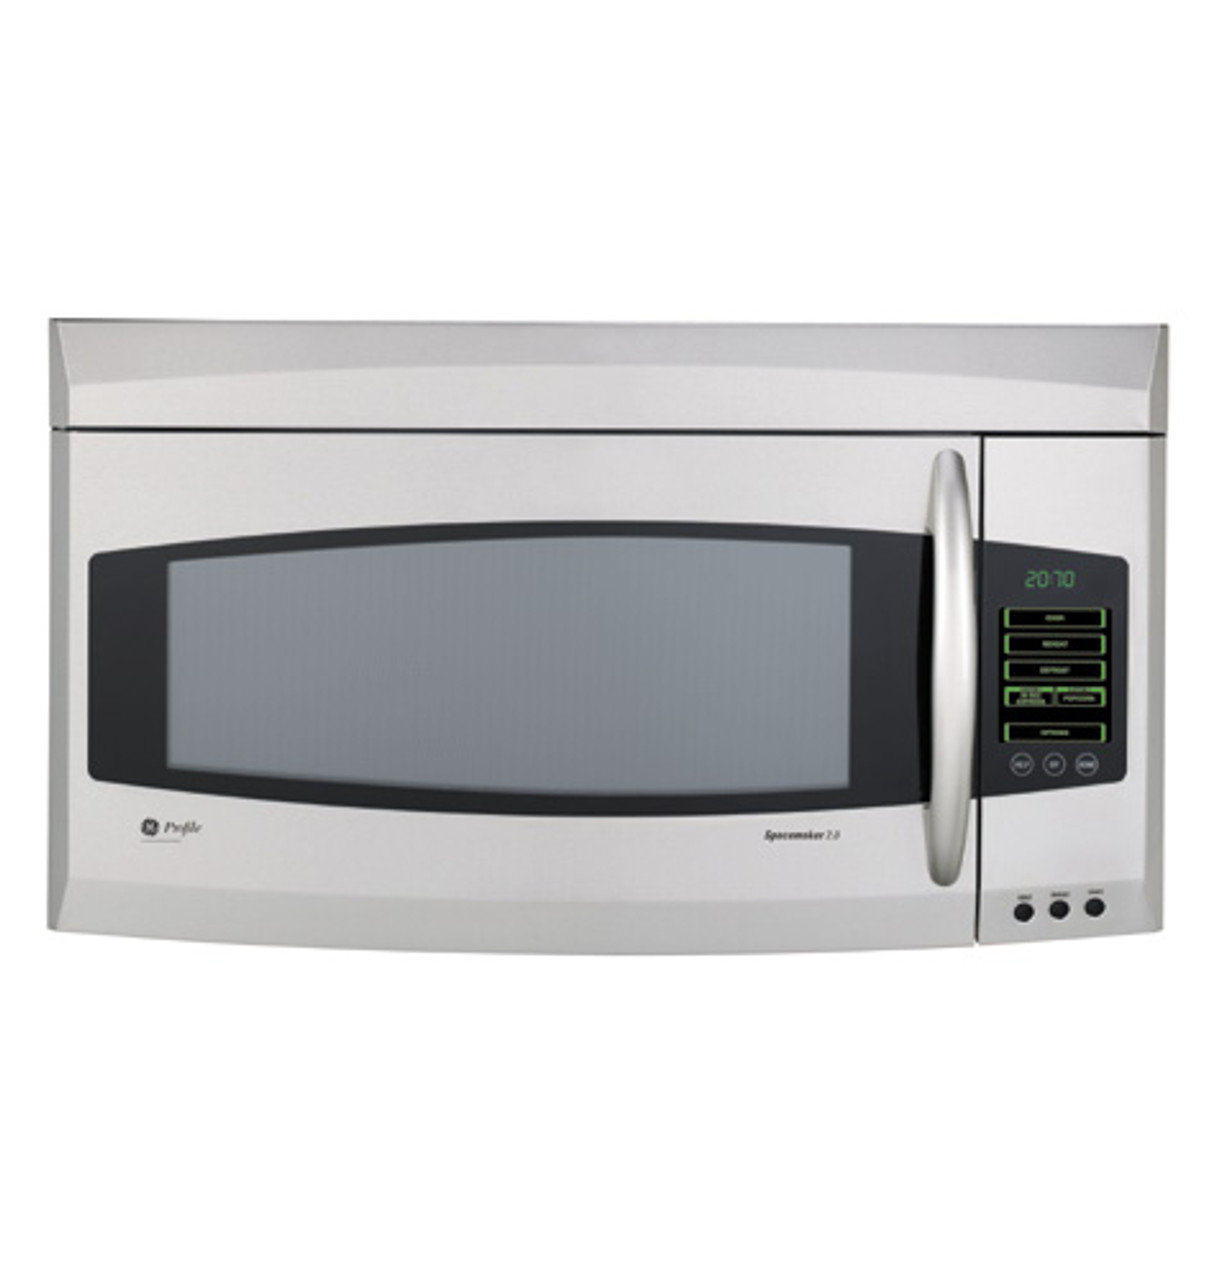 ge profile spacemaker over the range microwave oven jvm2070sh